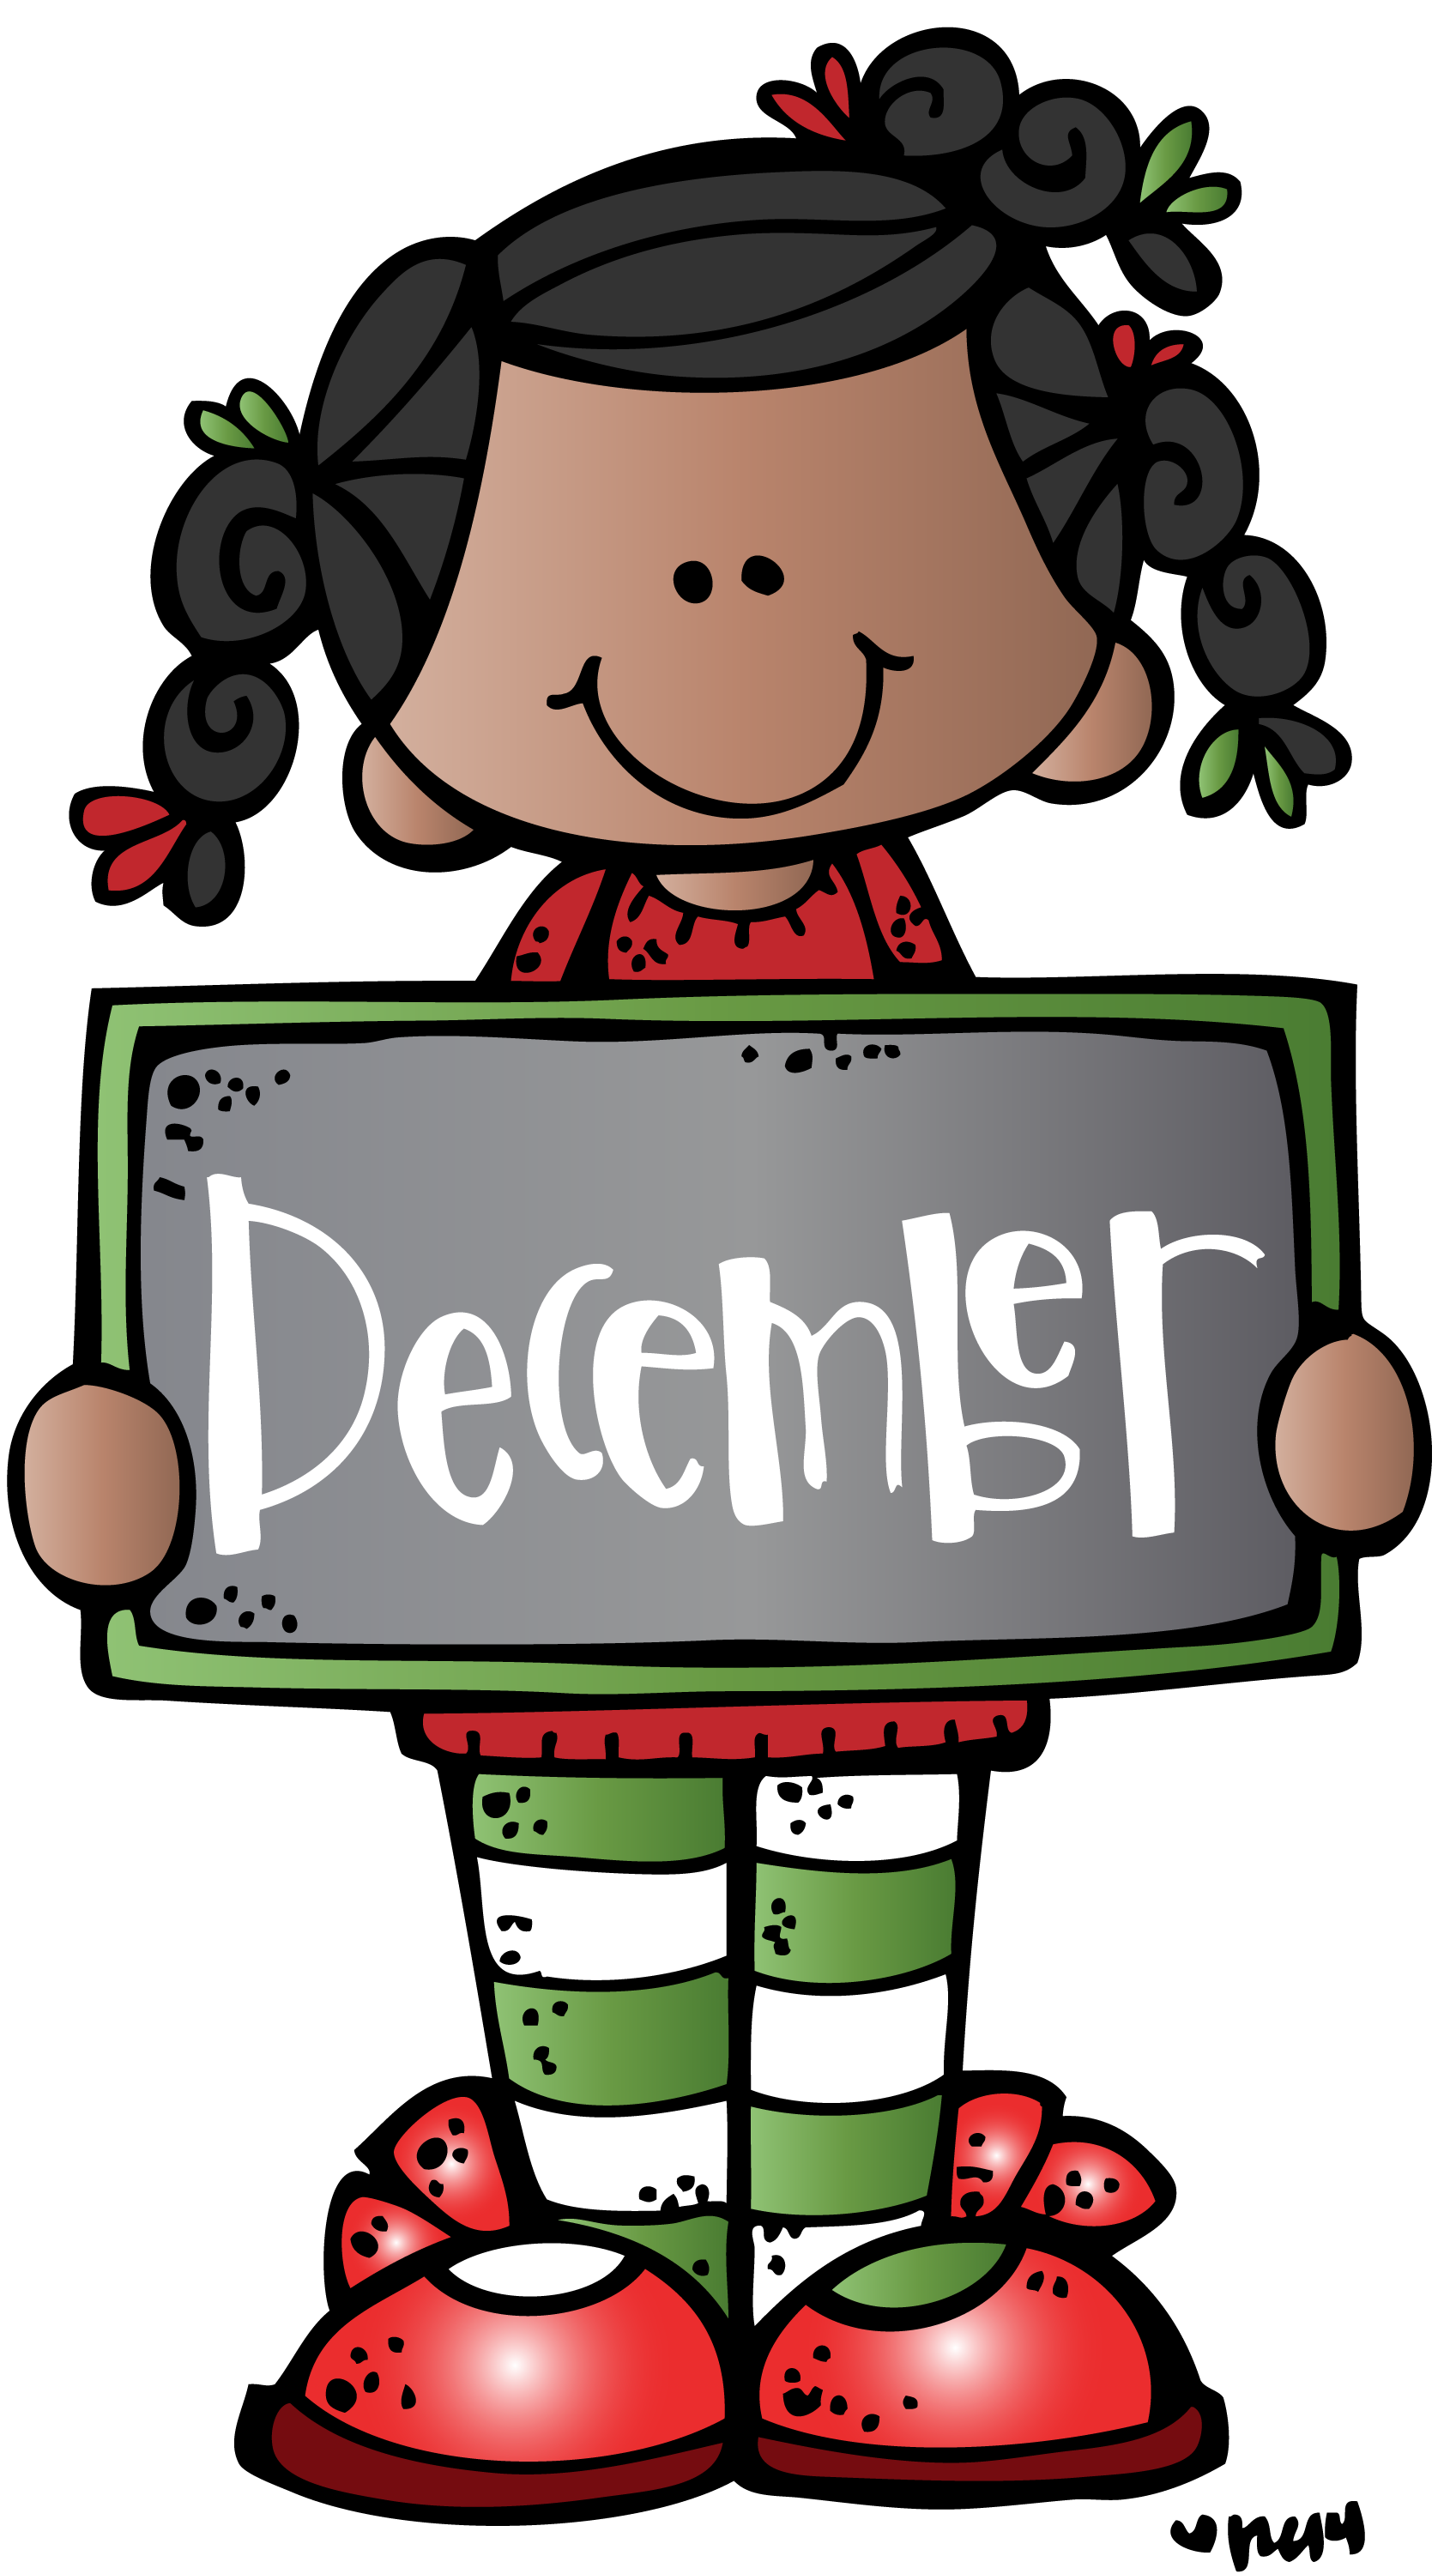 December clipart melonheadz. Mkb c illustrating llc